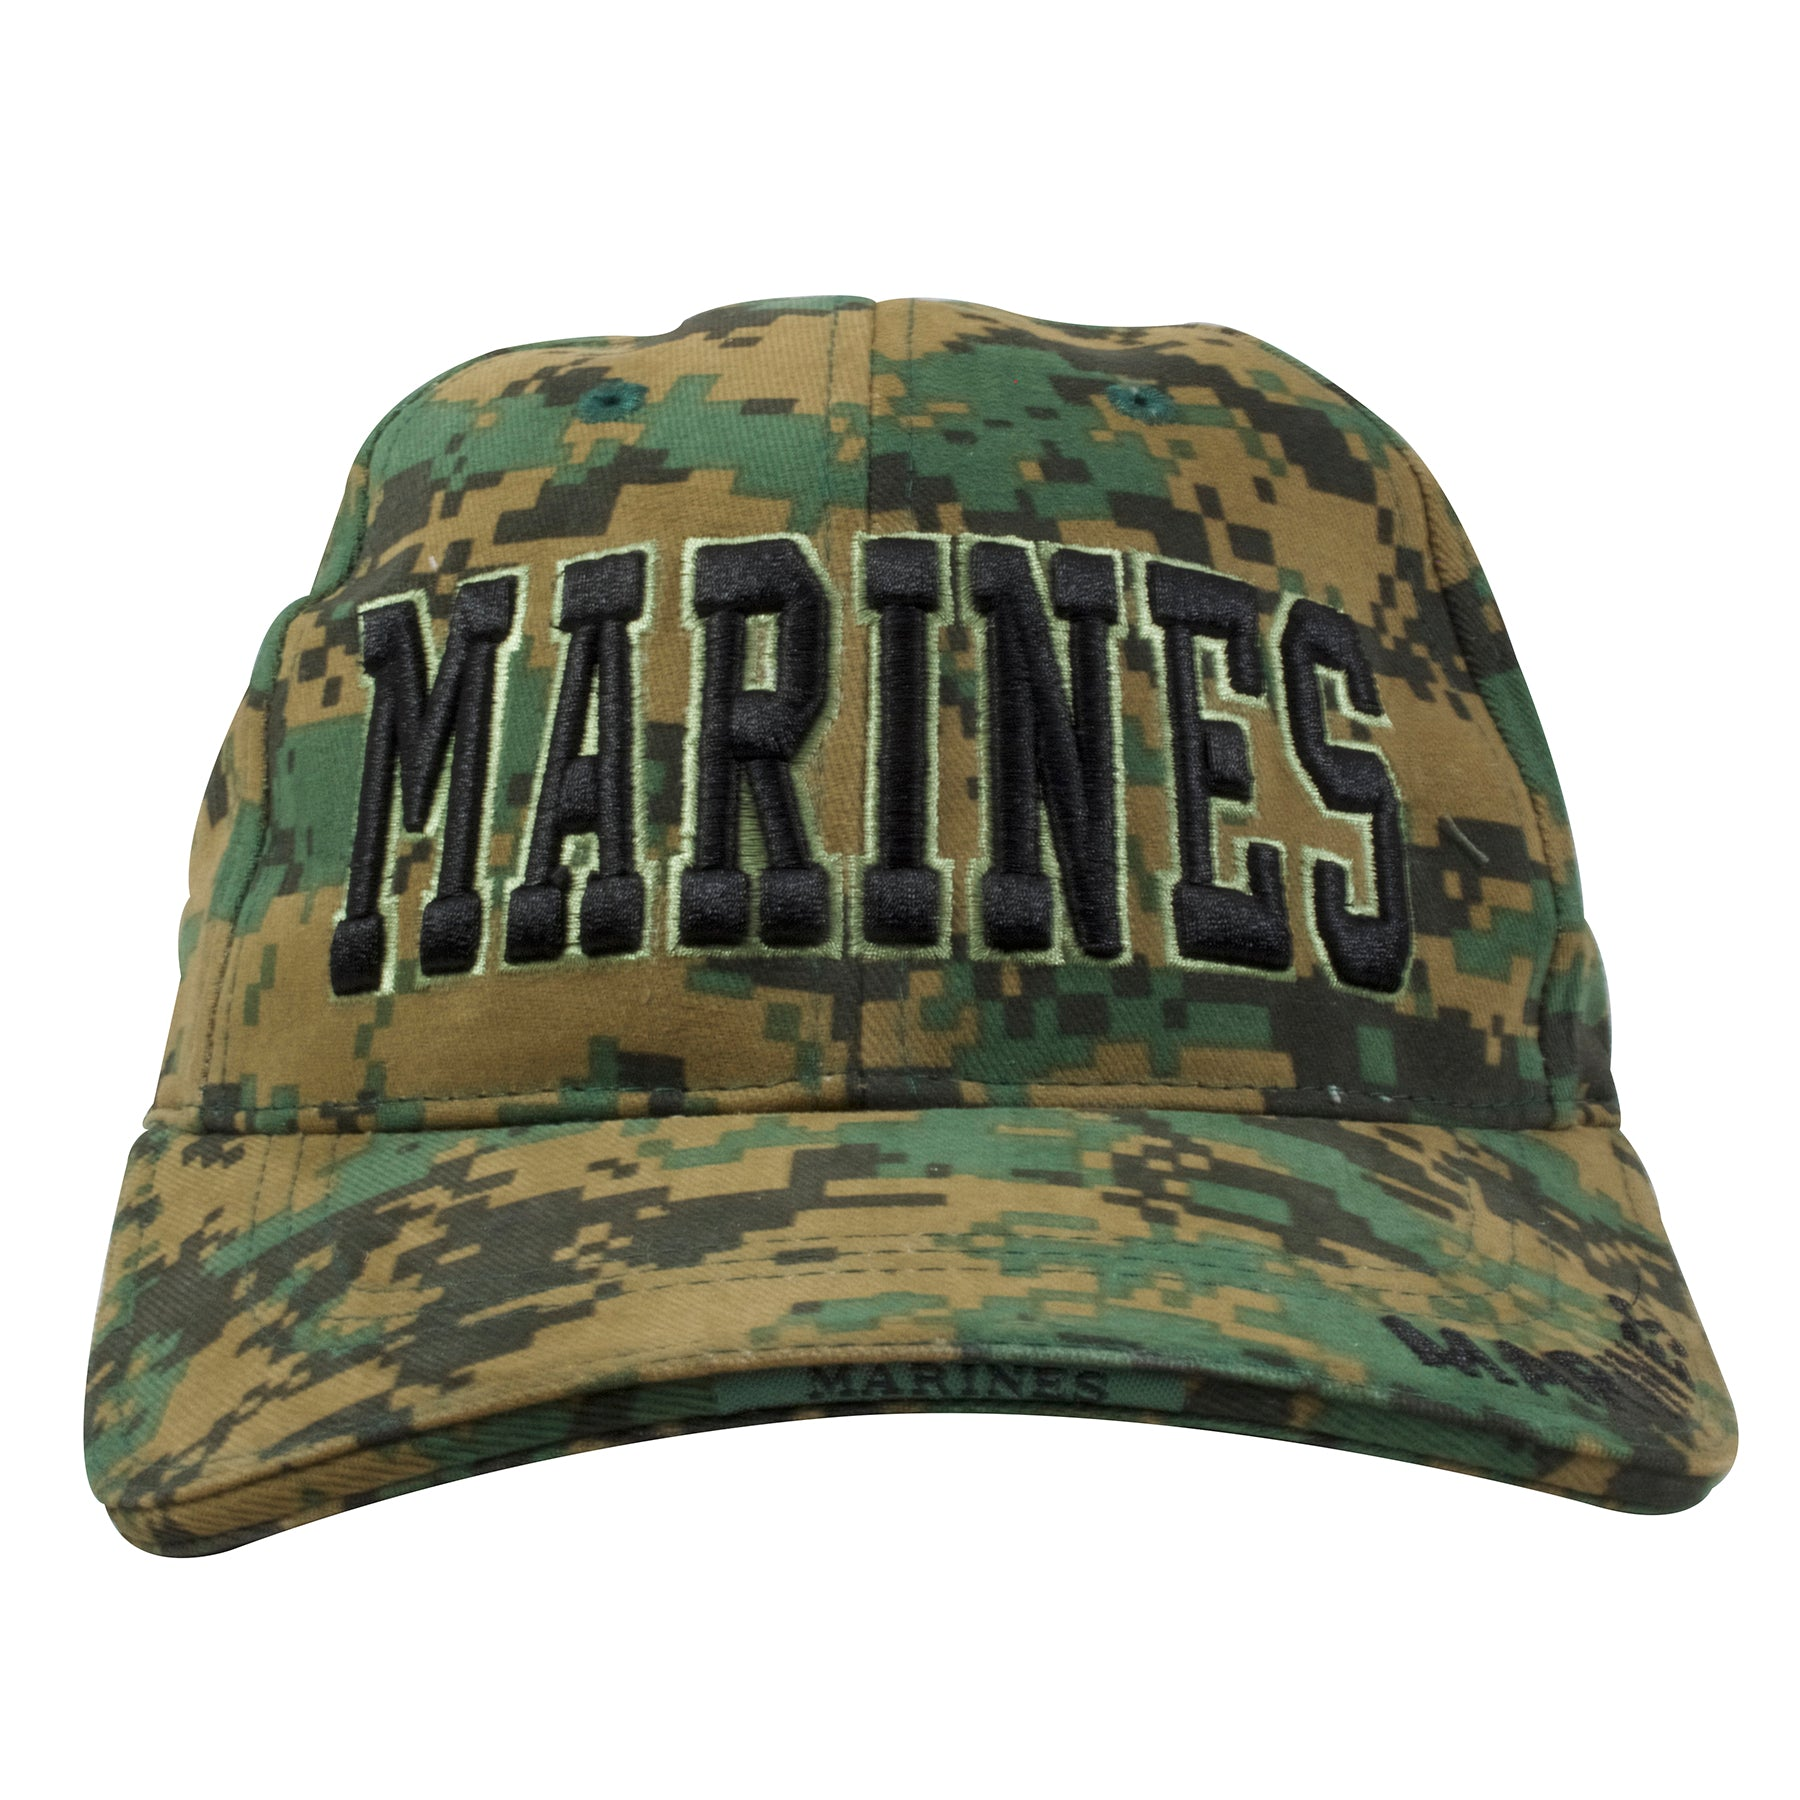 c27719be9e4 Marines MARPAT Digital Camouflage Adjustable Baseball Cap – Cap Swag